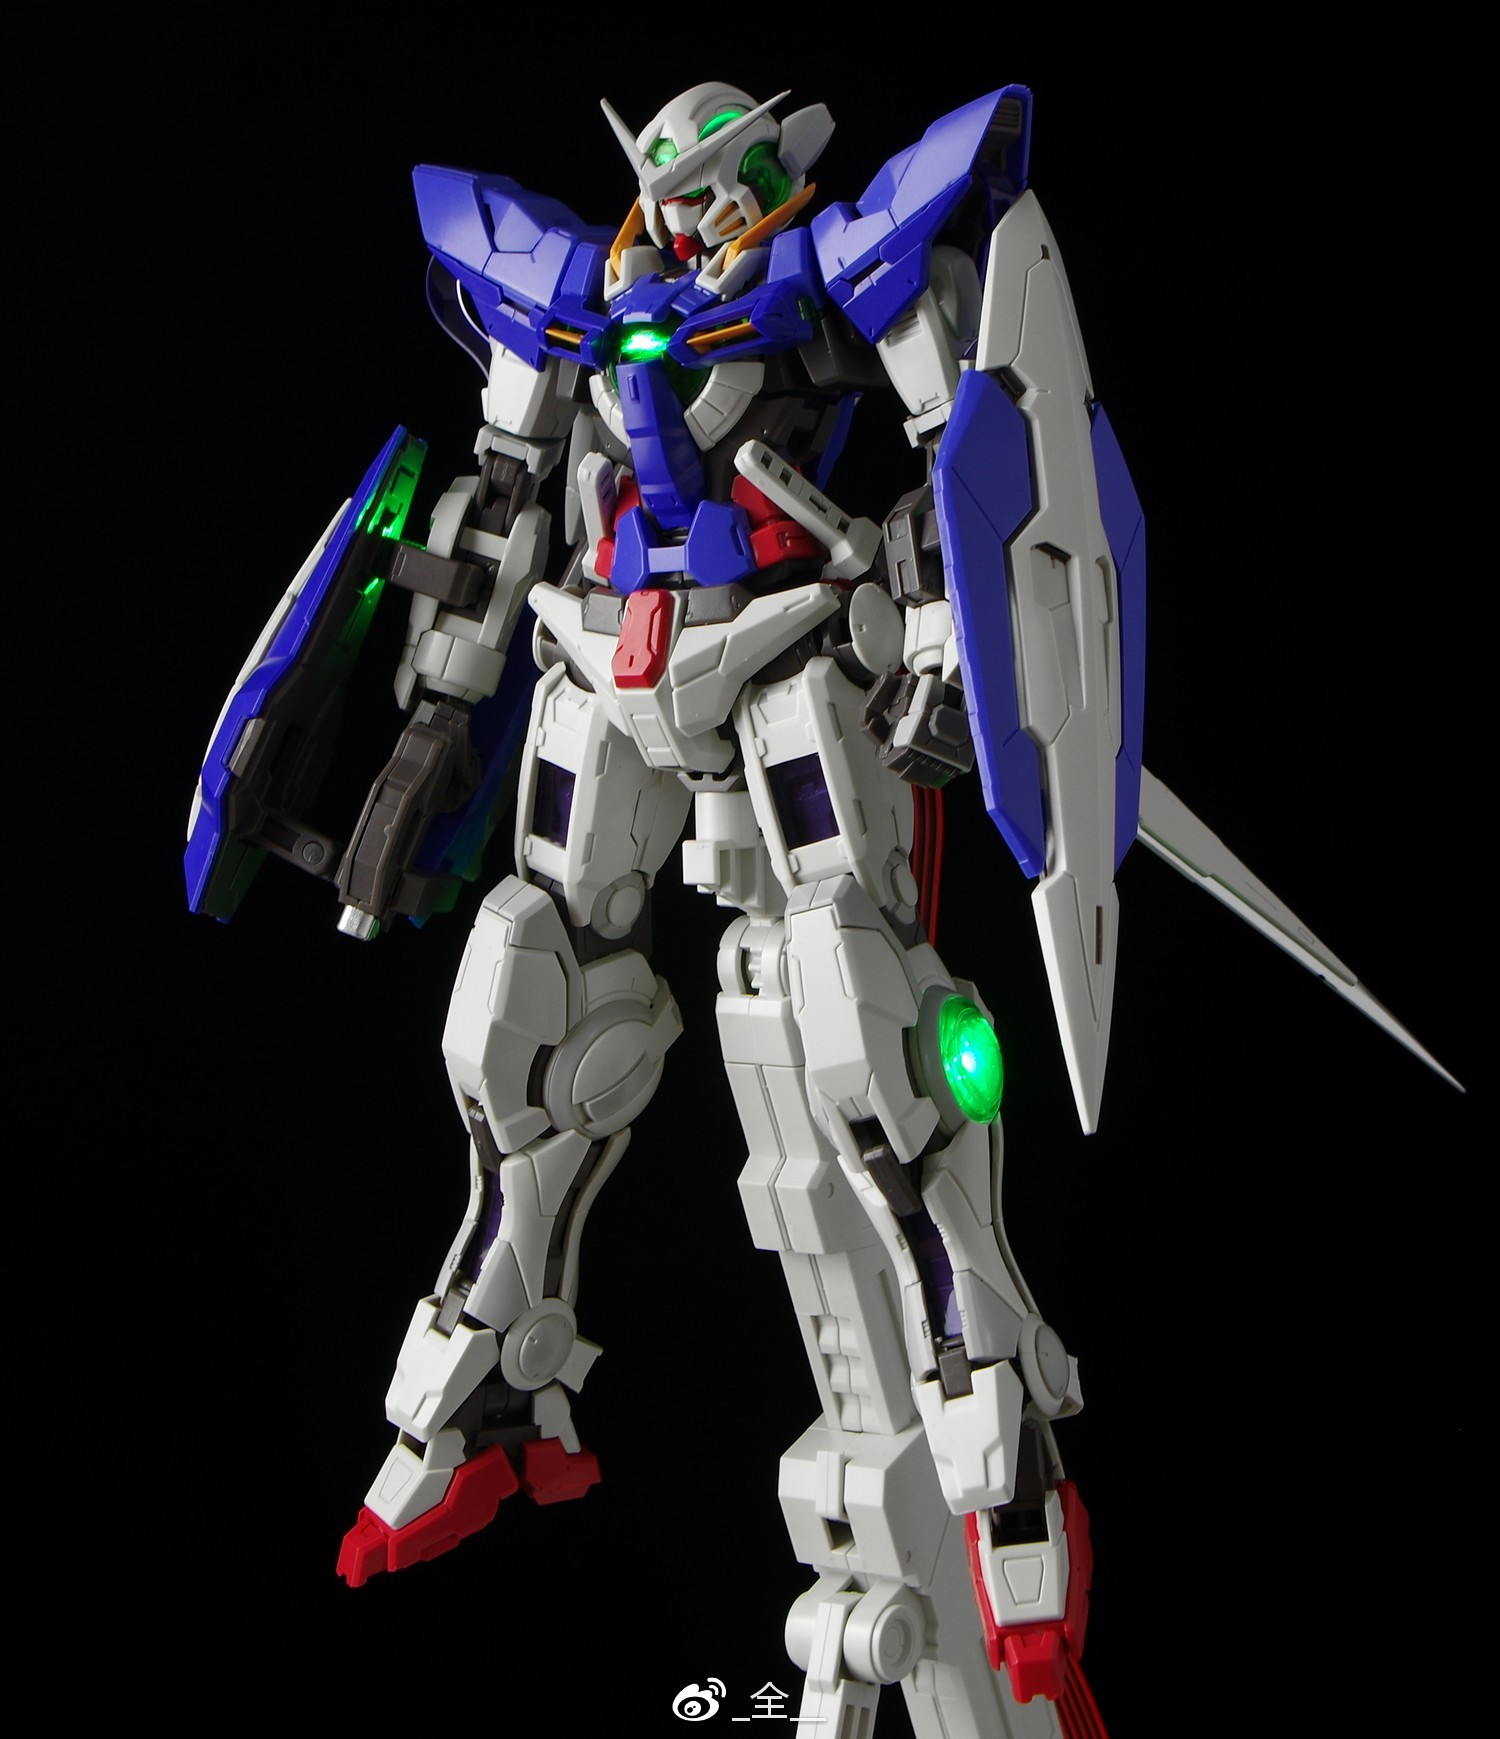 S269_mg_exia_led_hobby_star_inask_059.jpg